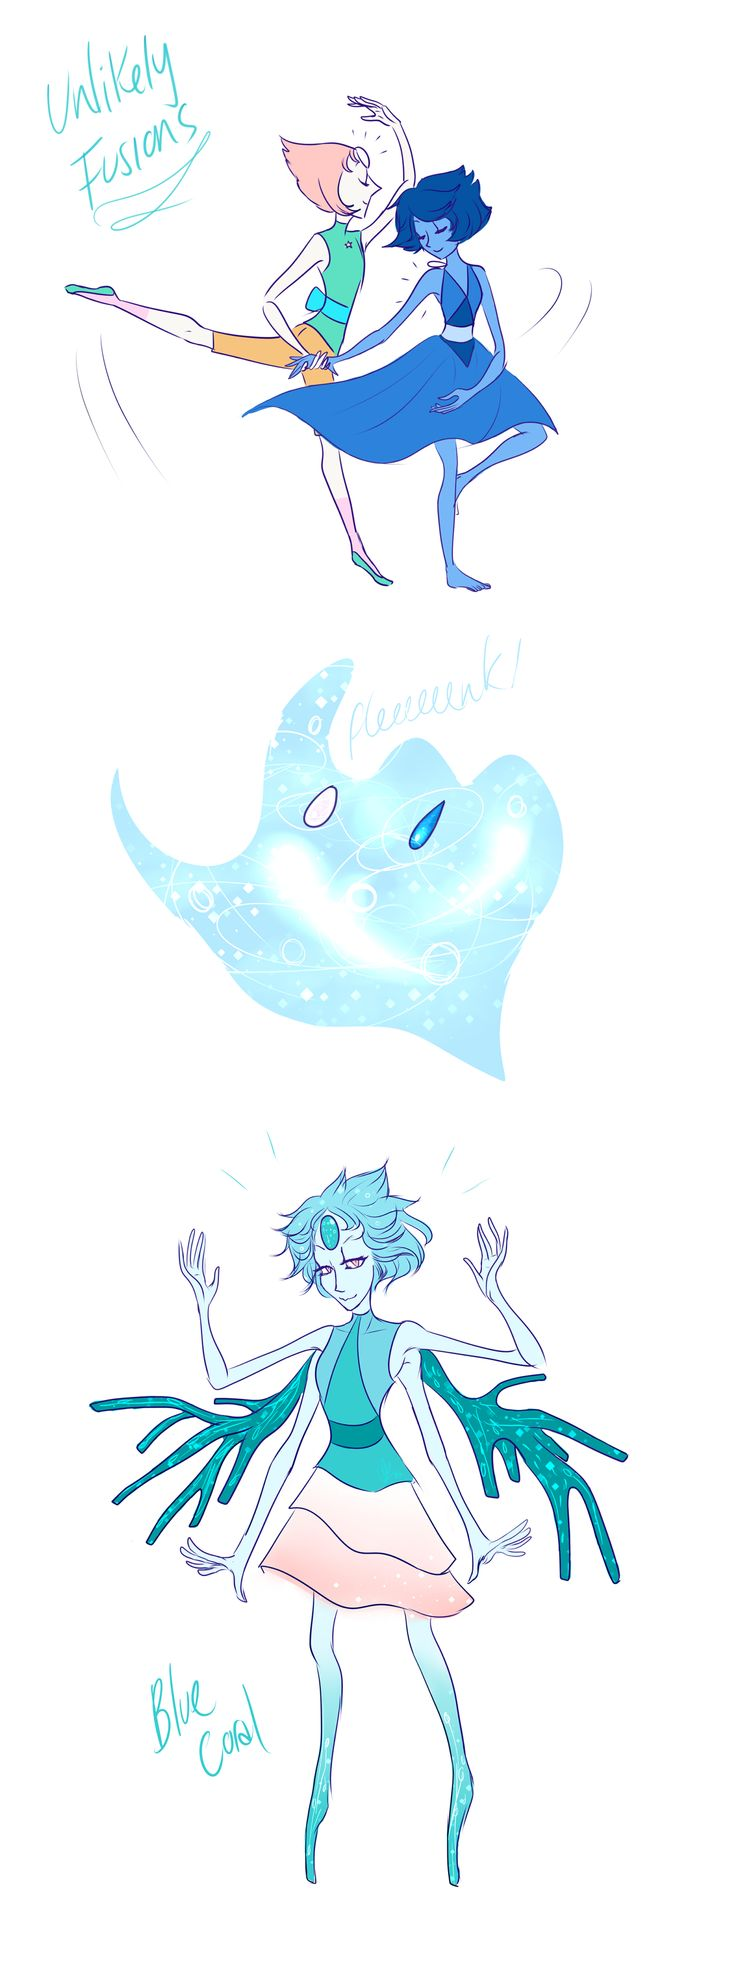 Unlikely Fusions - Blue Coral by 2Mummu.deviantart.com on @DeviantArt